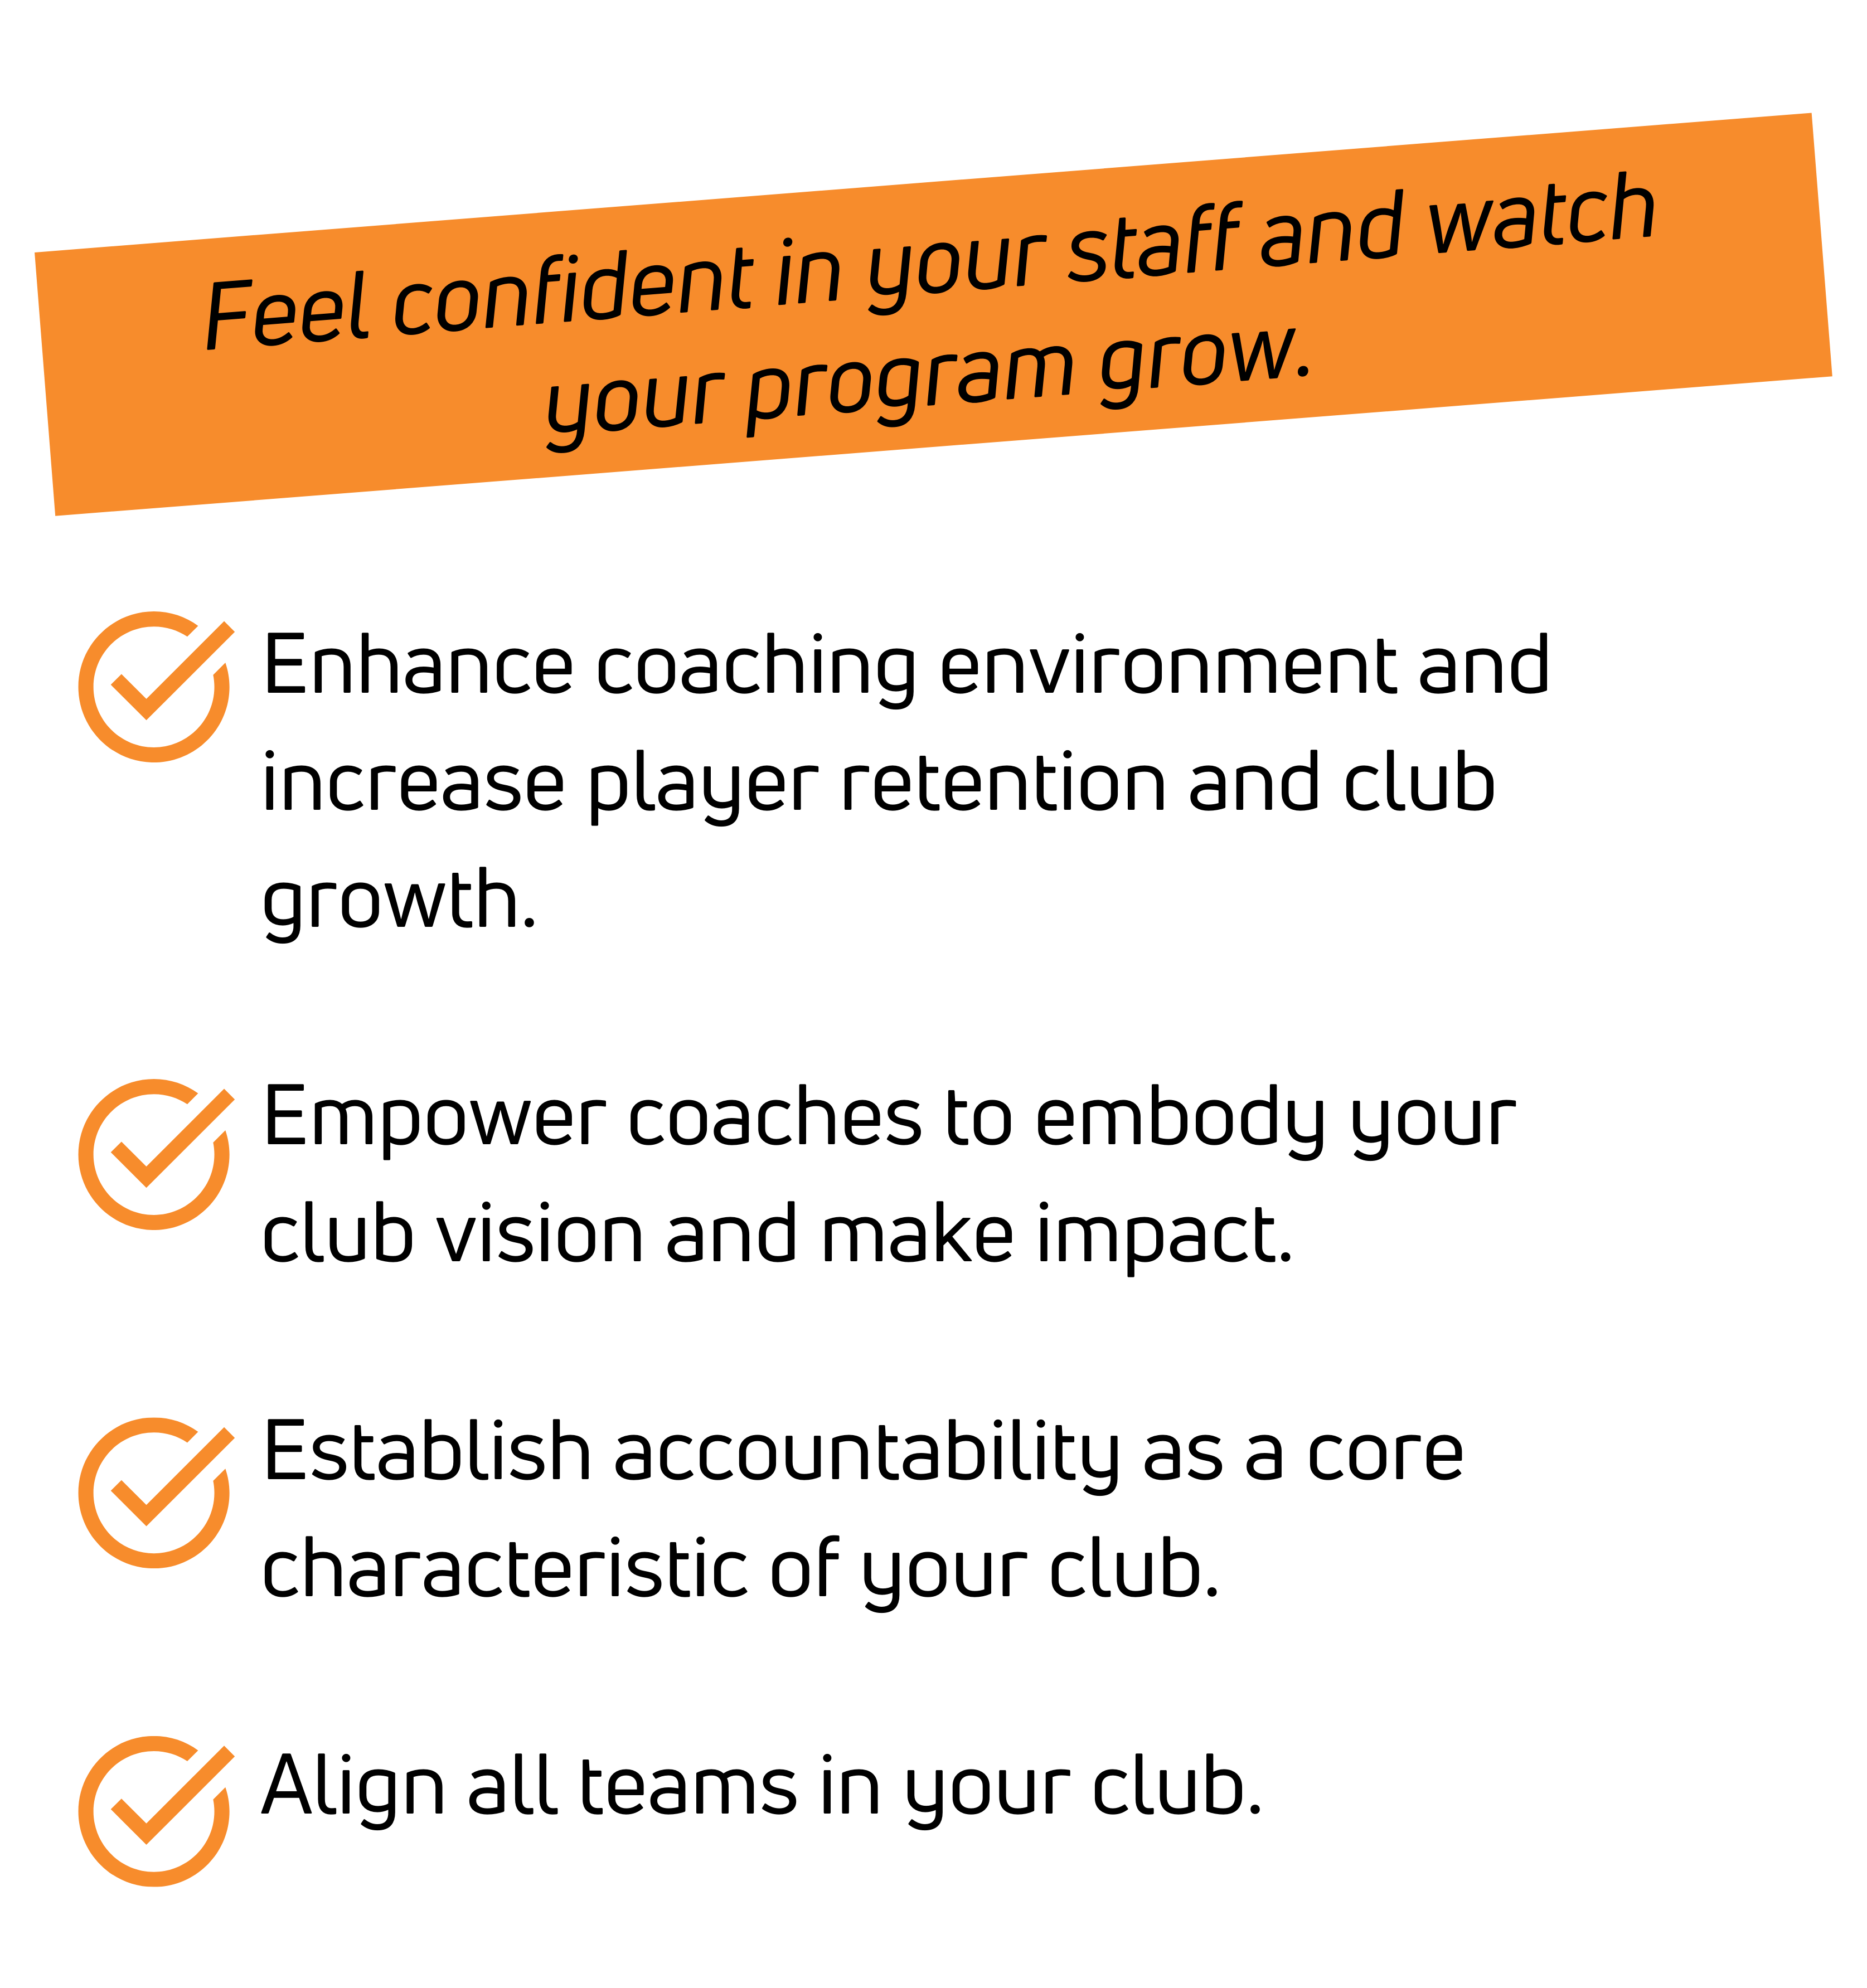 Build more impactful training both on the practice field and at home. (1)